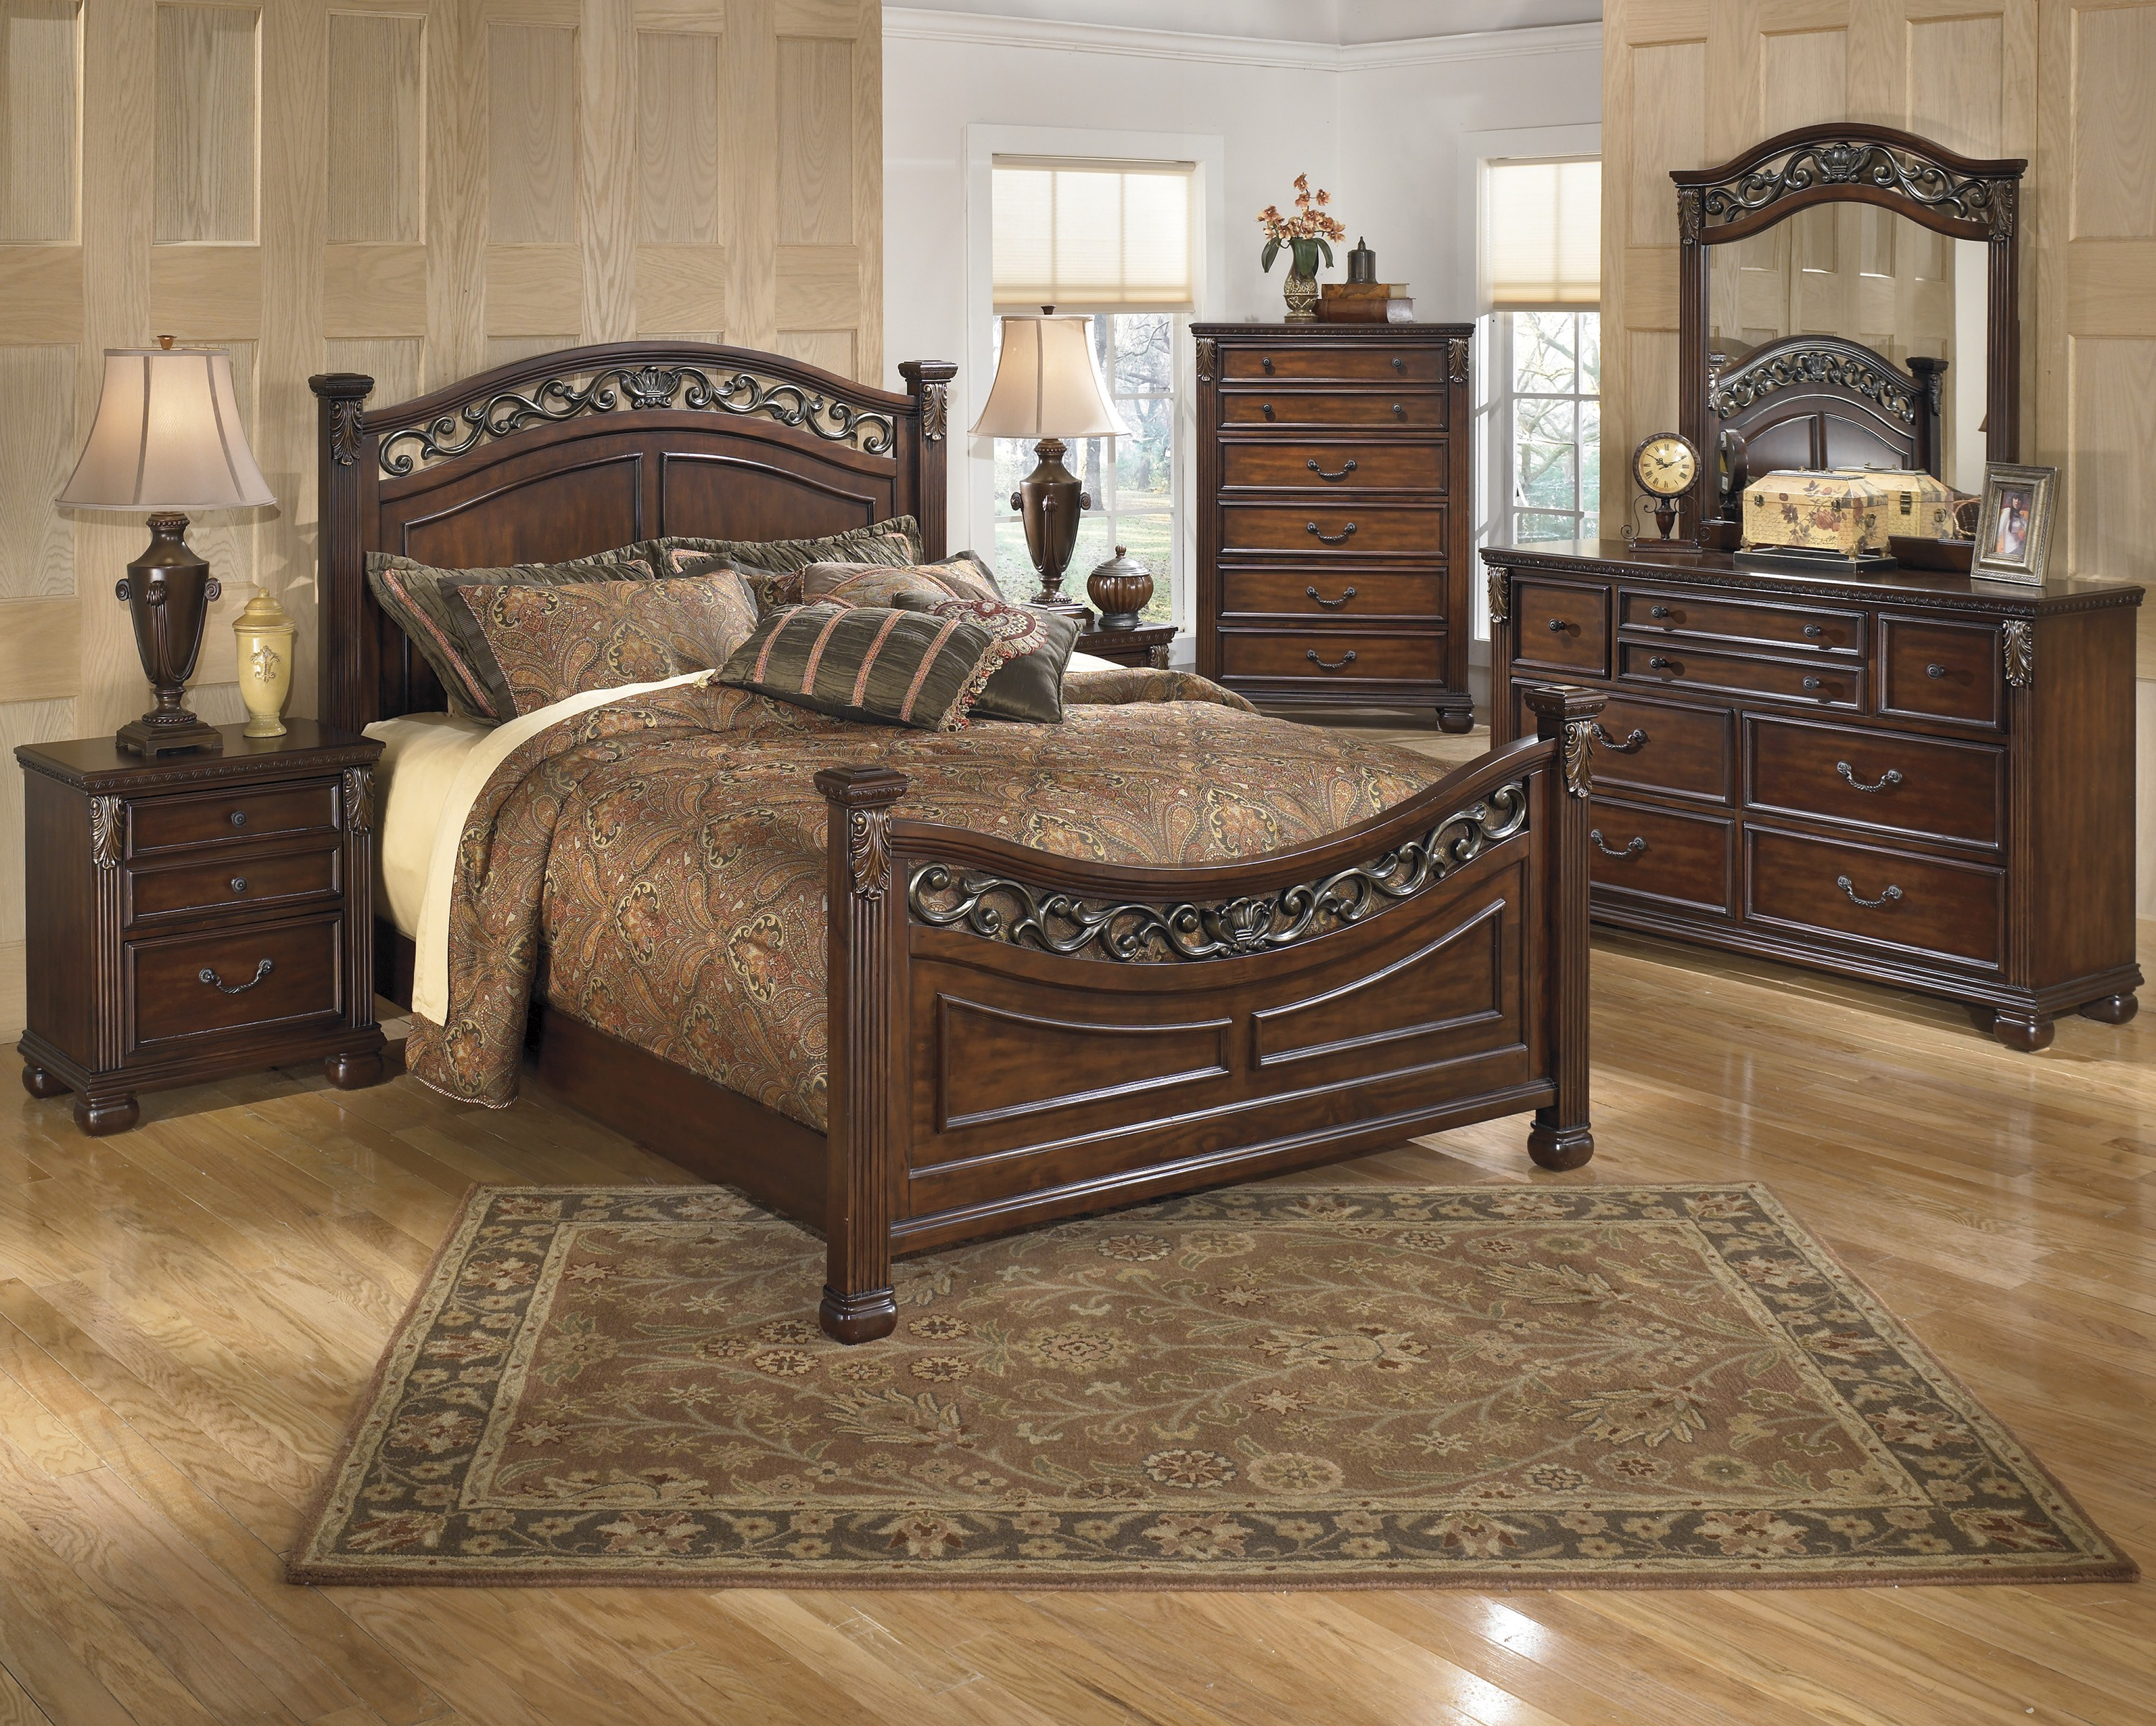 signature ashley queen size bedroom set catalina by quickly headboard sets full design with